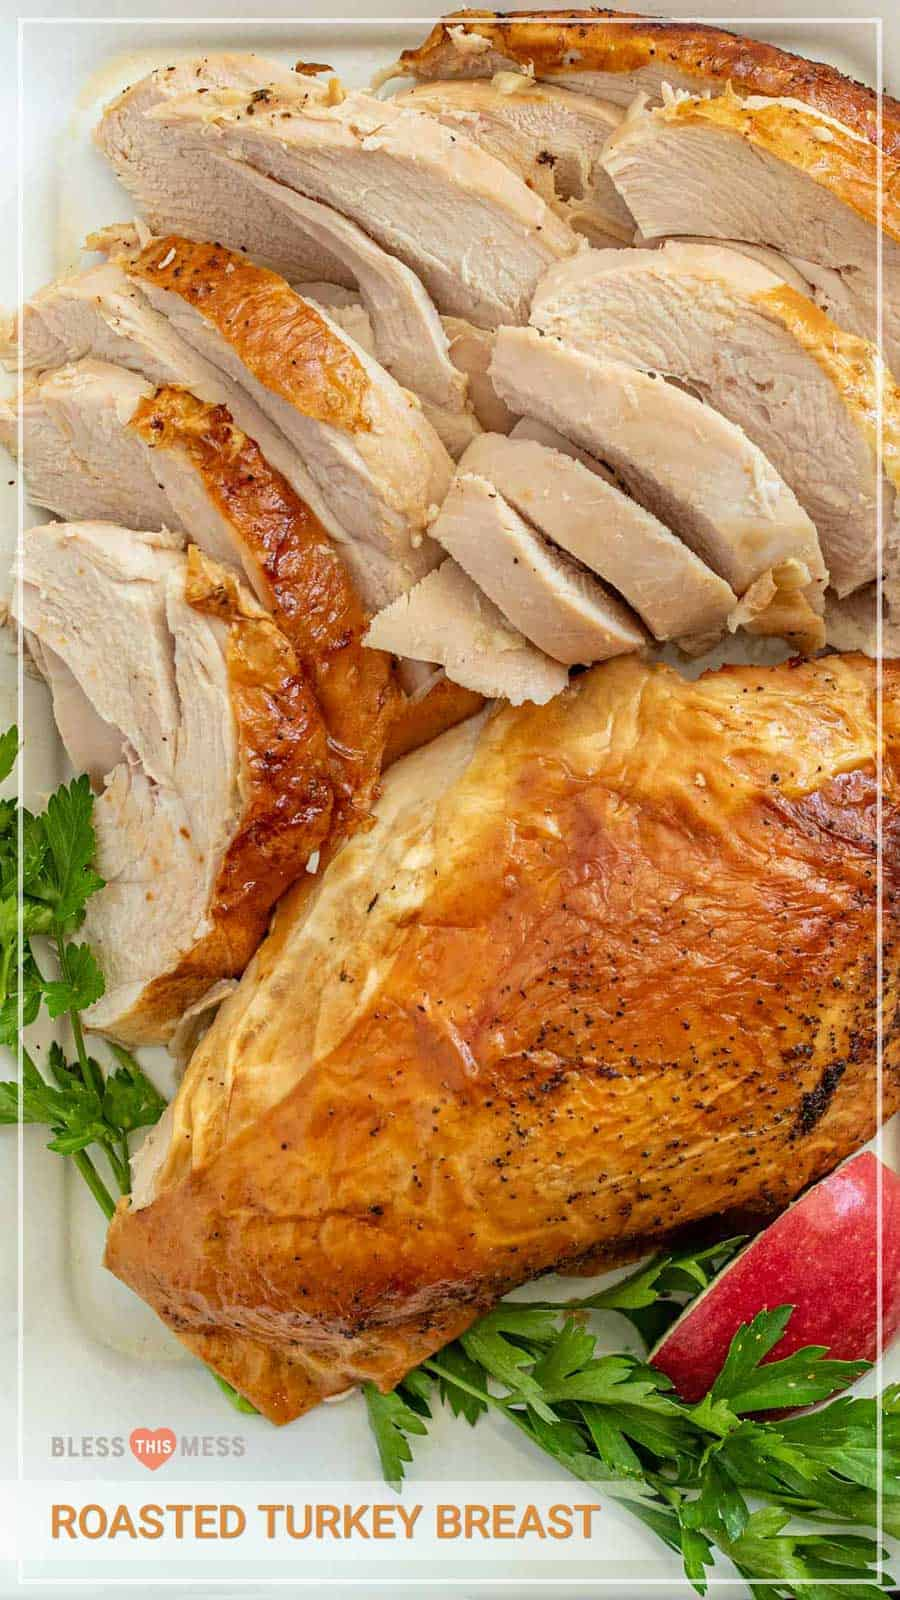 This recipe for roast turkey breast is the perfect simple roasted turkey for a holiday entree that you can easily prep no matter how much cooking or hosting experience you have! It comes out juicy and buttery with a crispy skin every time. Whether you've hosted 20 Thanksgivings or this is your first holiday at your home, you'll love this simple roasted turkey breast recipe that has insanely good flavor and juicy, tender texture. #roastedturkey #turkey #turkeybreast #thanksgivingrecipes